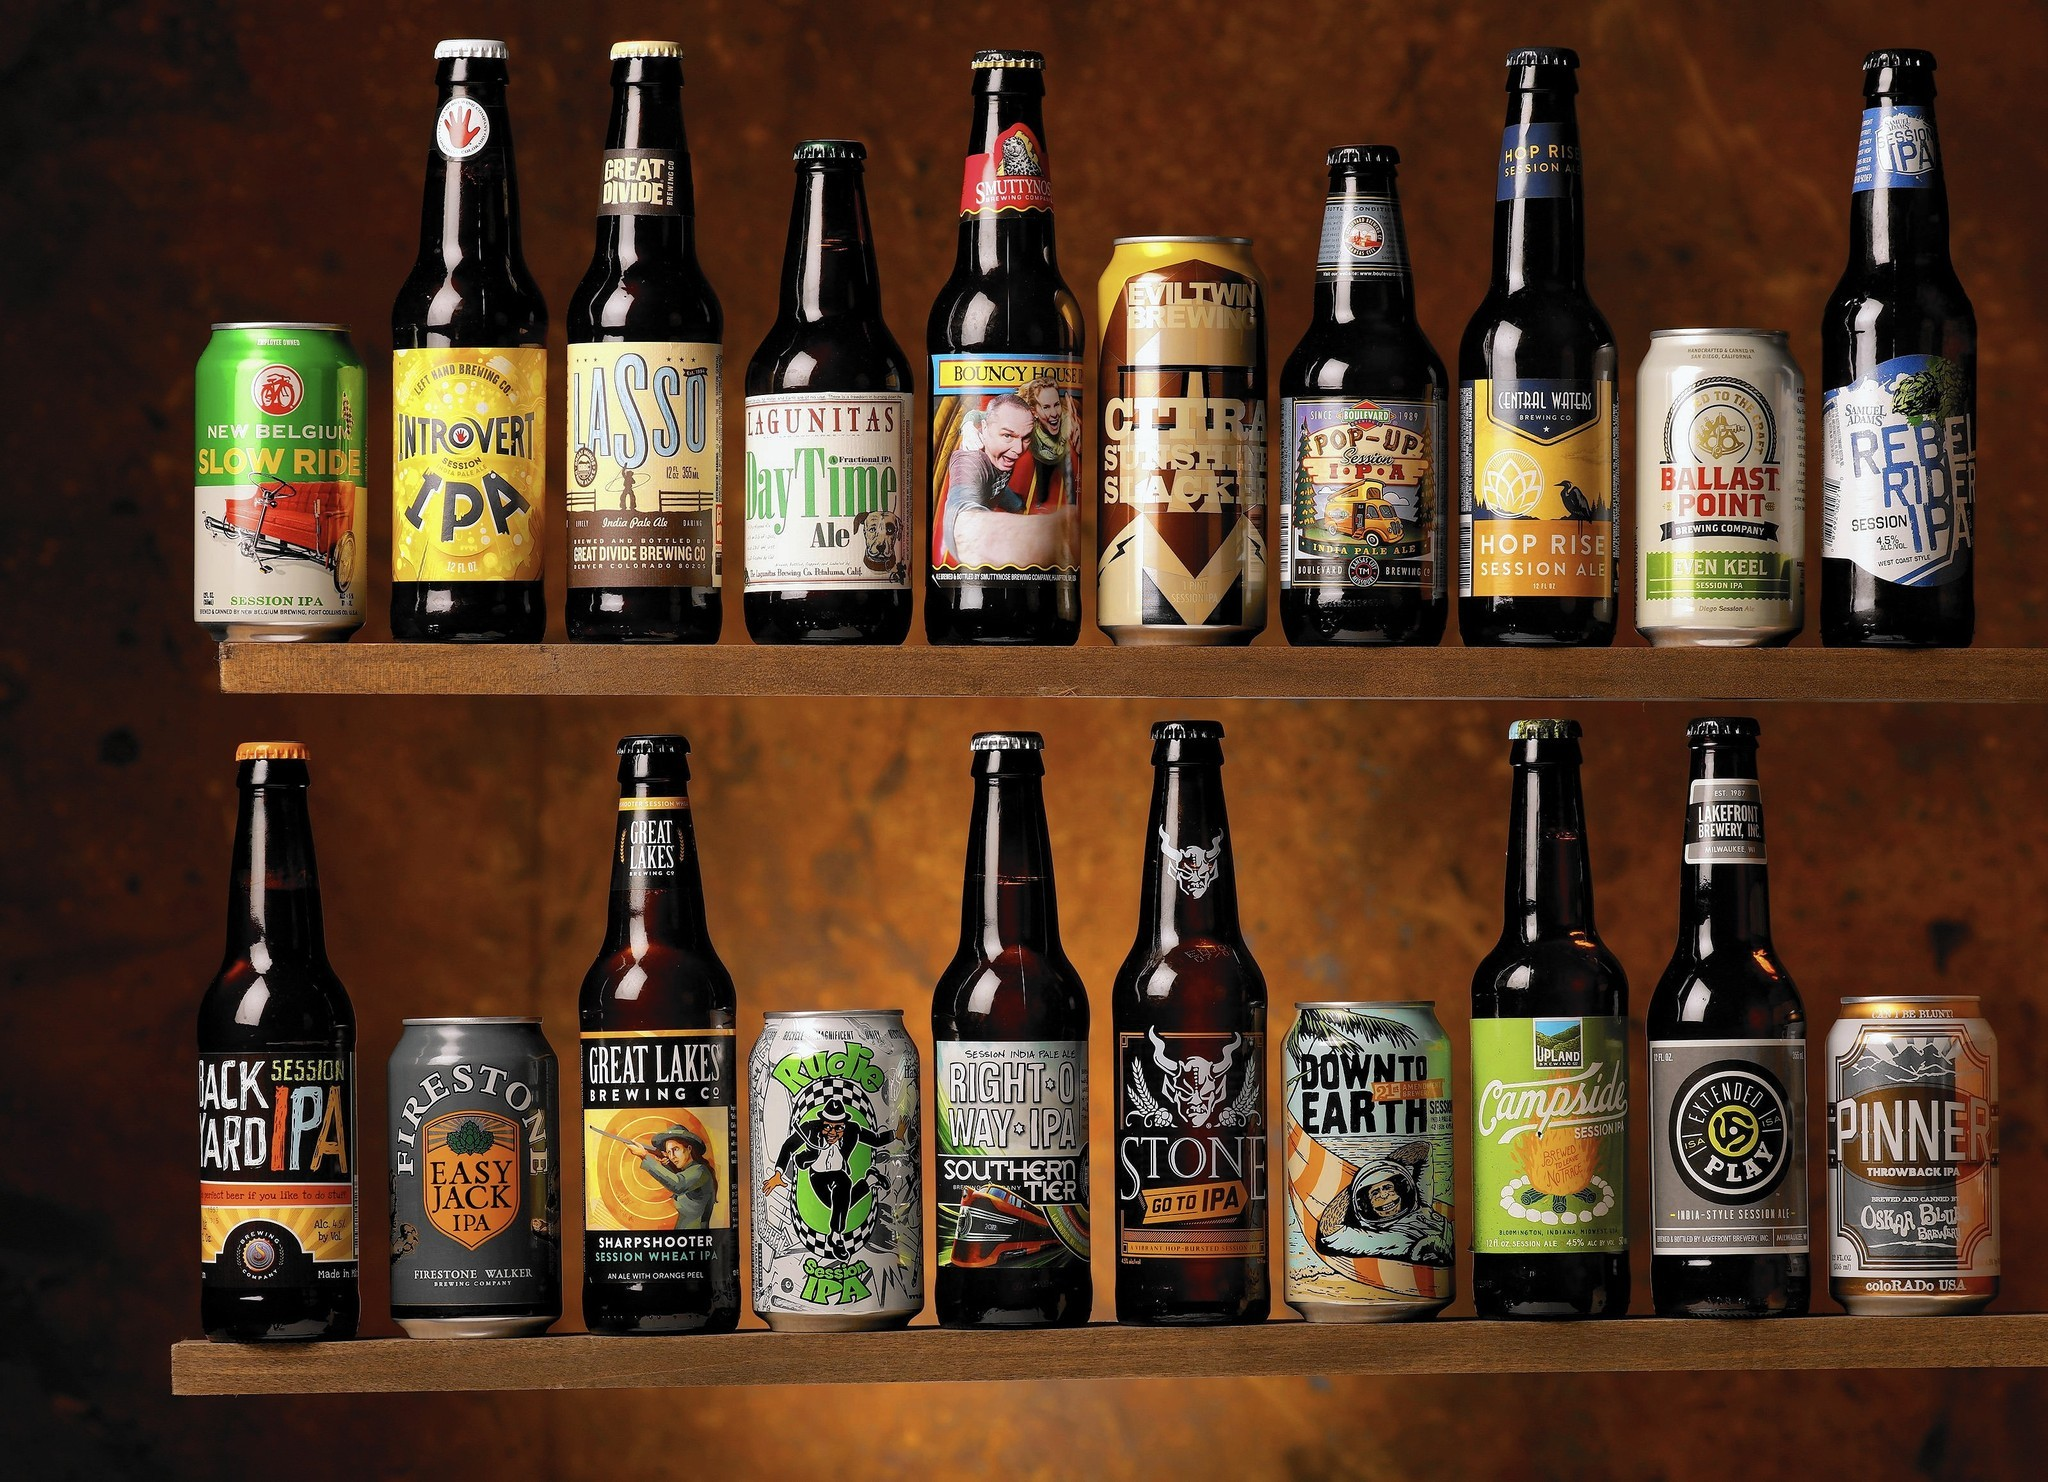 22 session ipas ranked! - chicago tribune